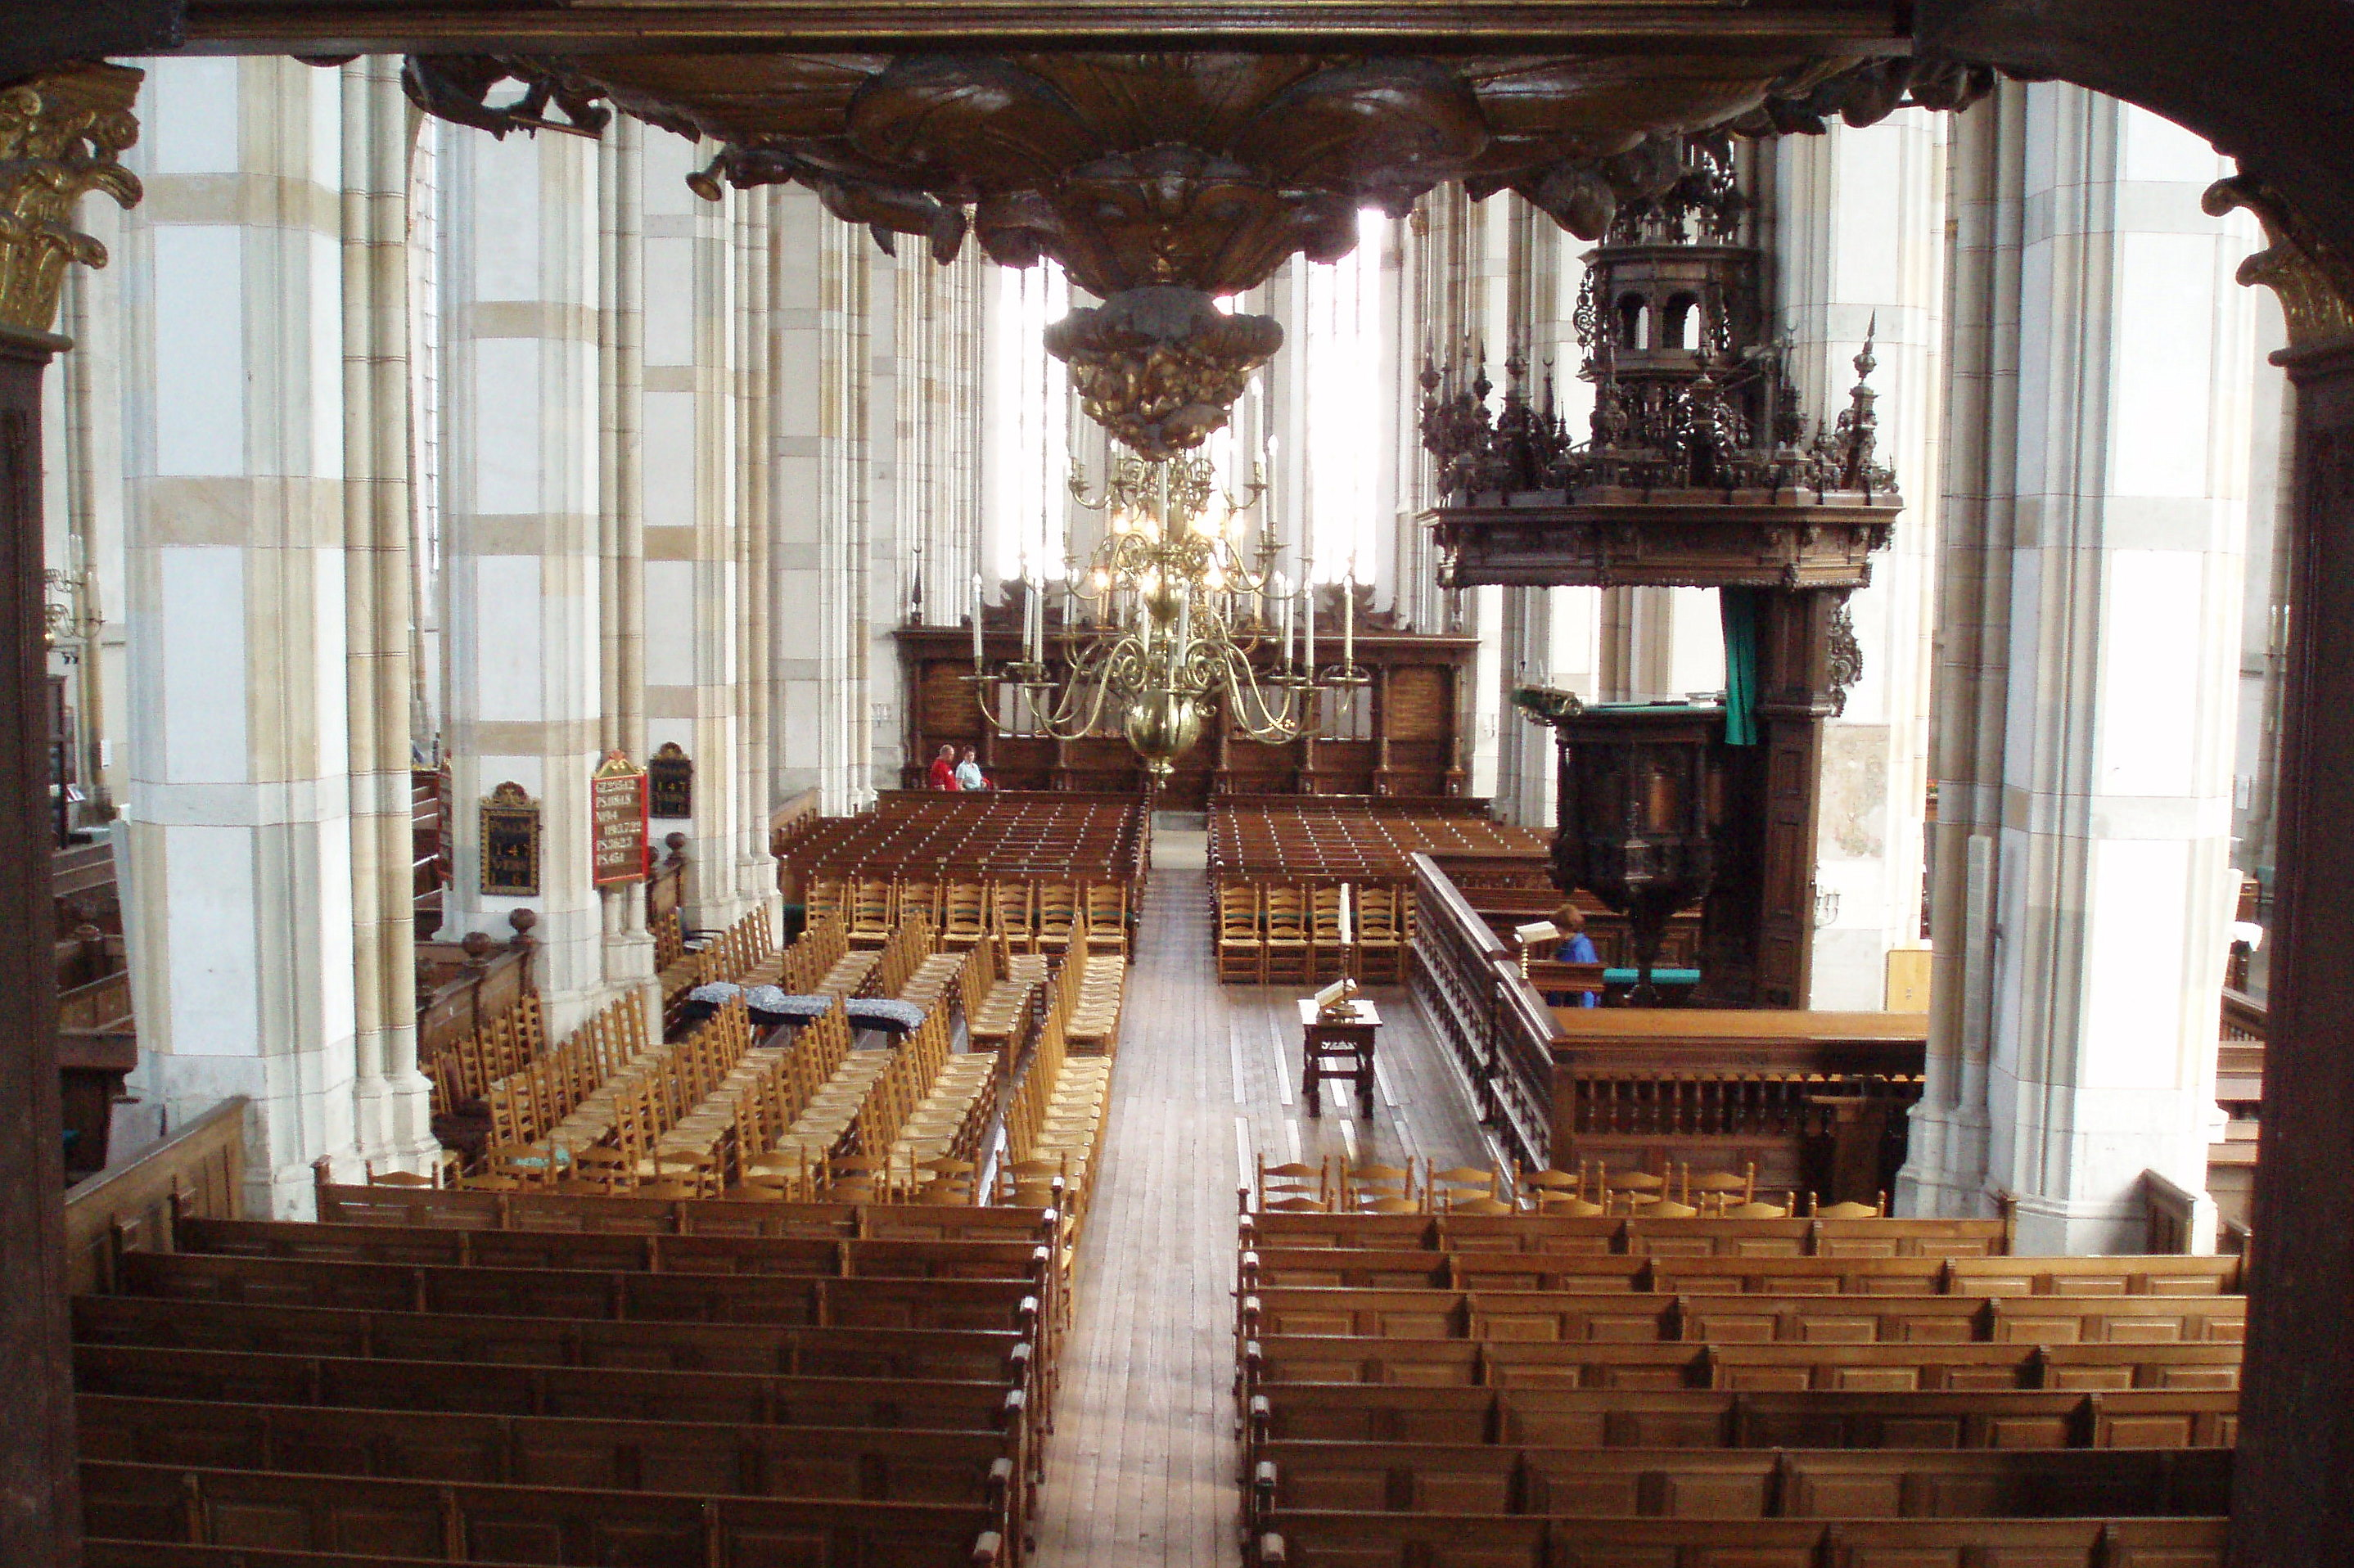 https://upload.wikimedia.org/wikipedia/commons/1/1c/Zwolle_Sint-Michaelskerk_Interieur_Overzicht.JPG